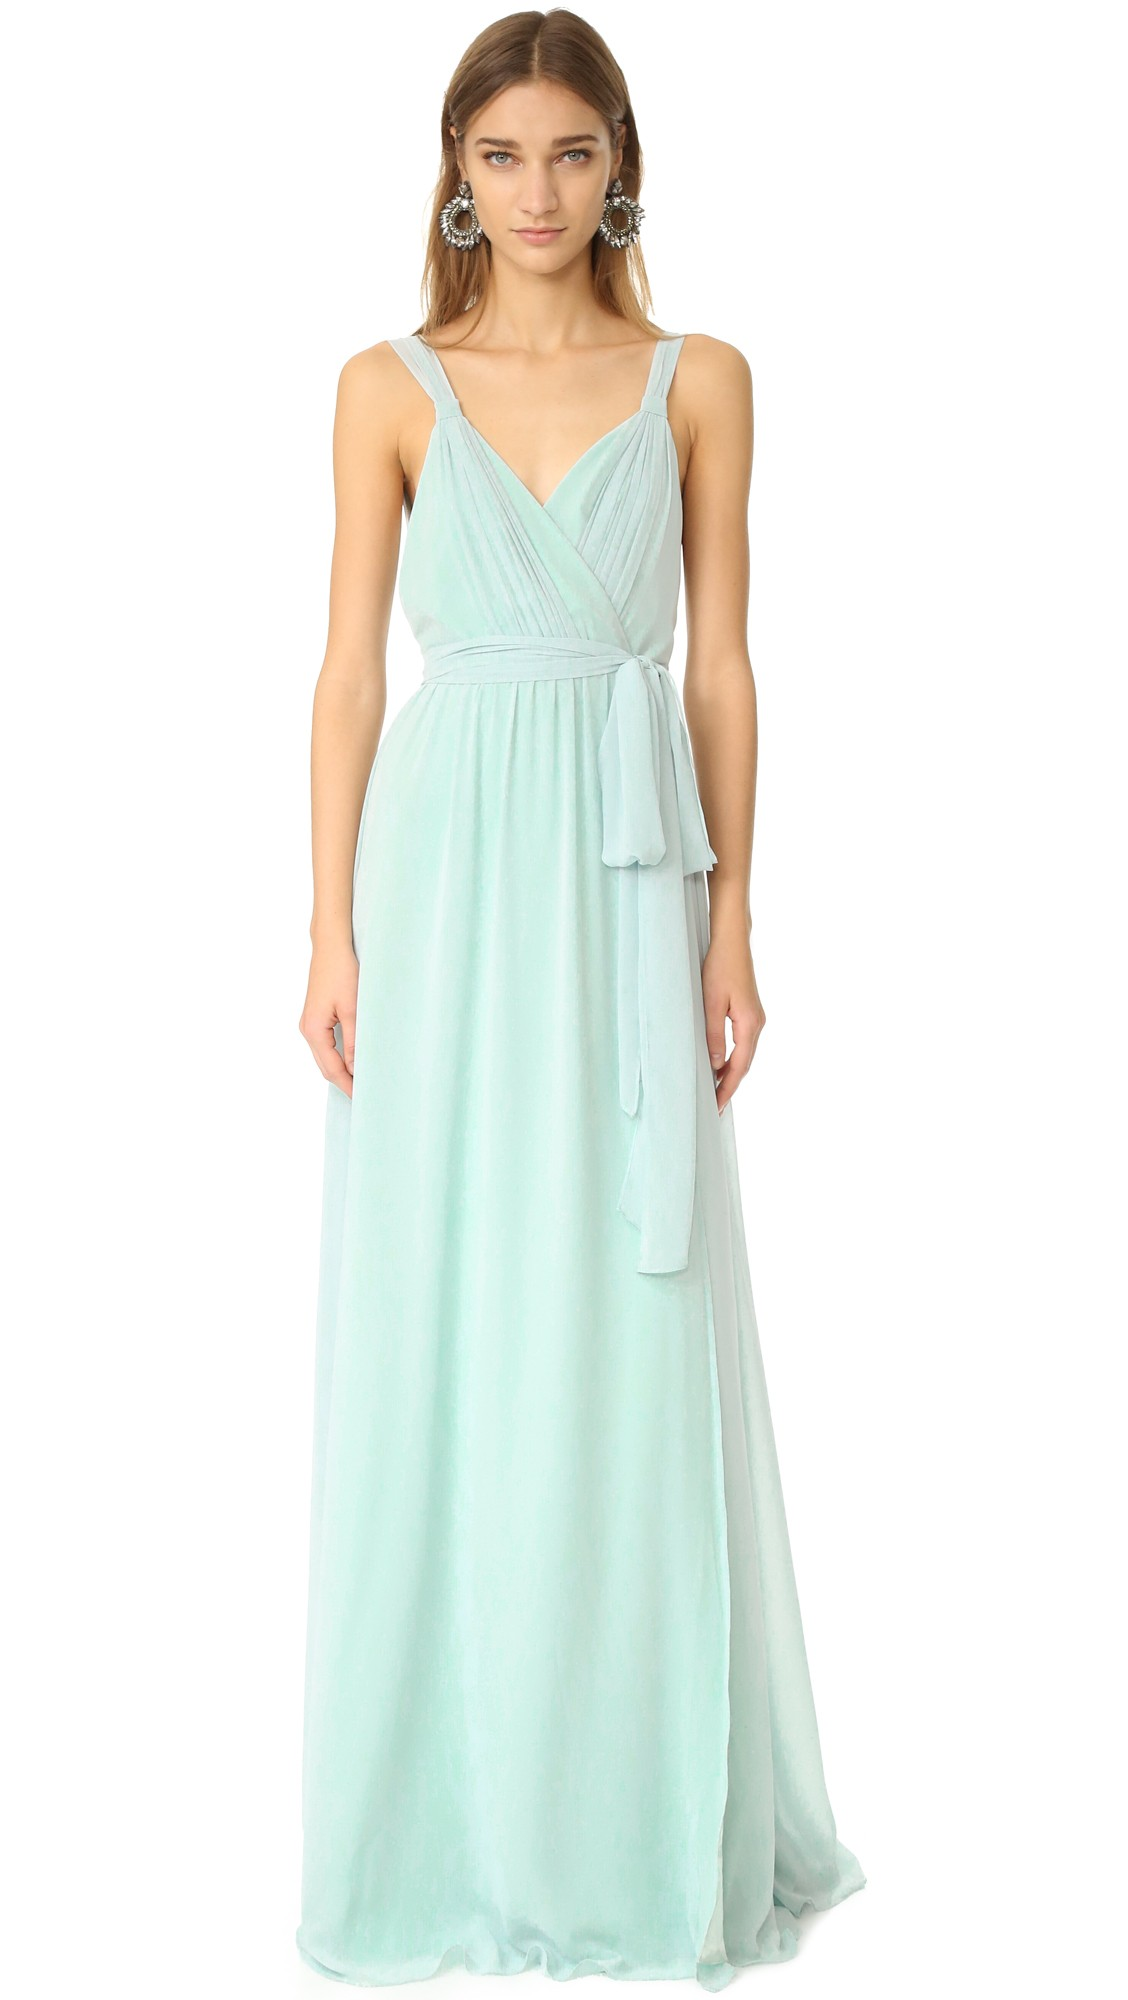 Mint mismatched bridesmaid dresses shopbop ombrellifo Choice Image